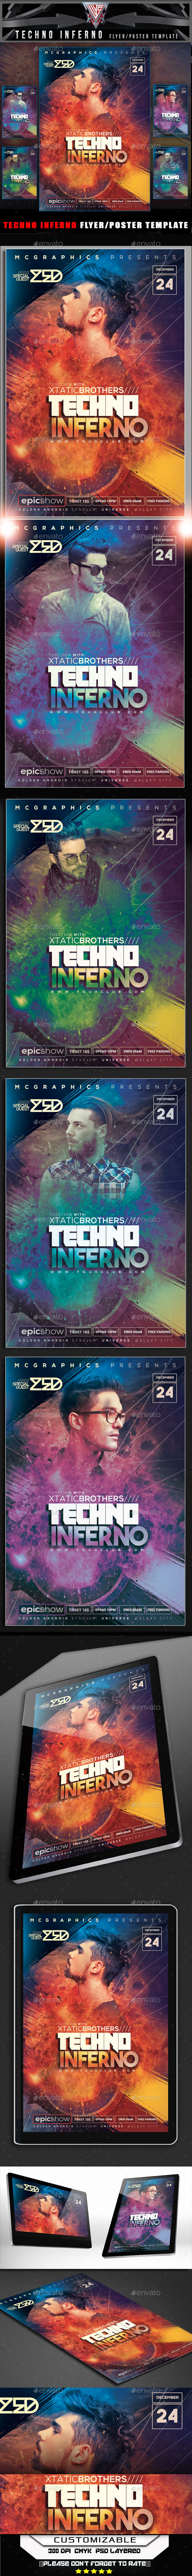 Techno Inferno Flyer Template - Events Flyers